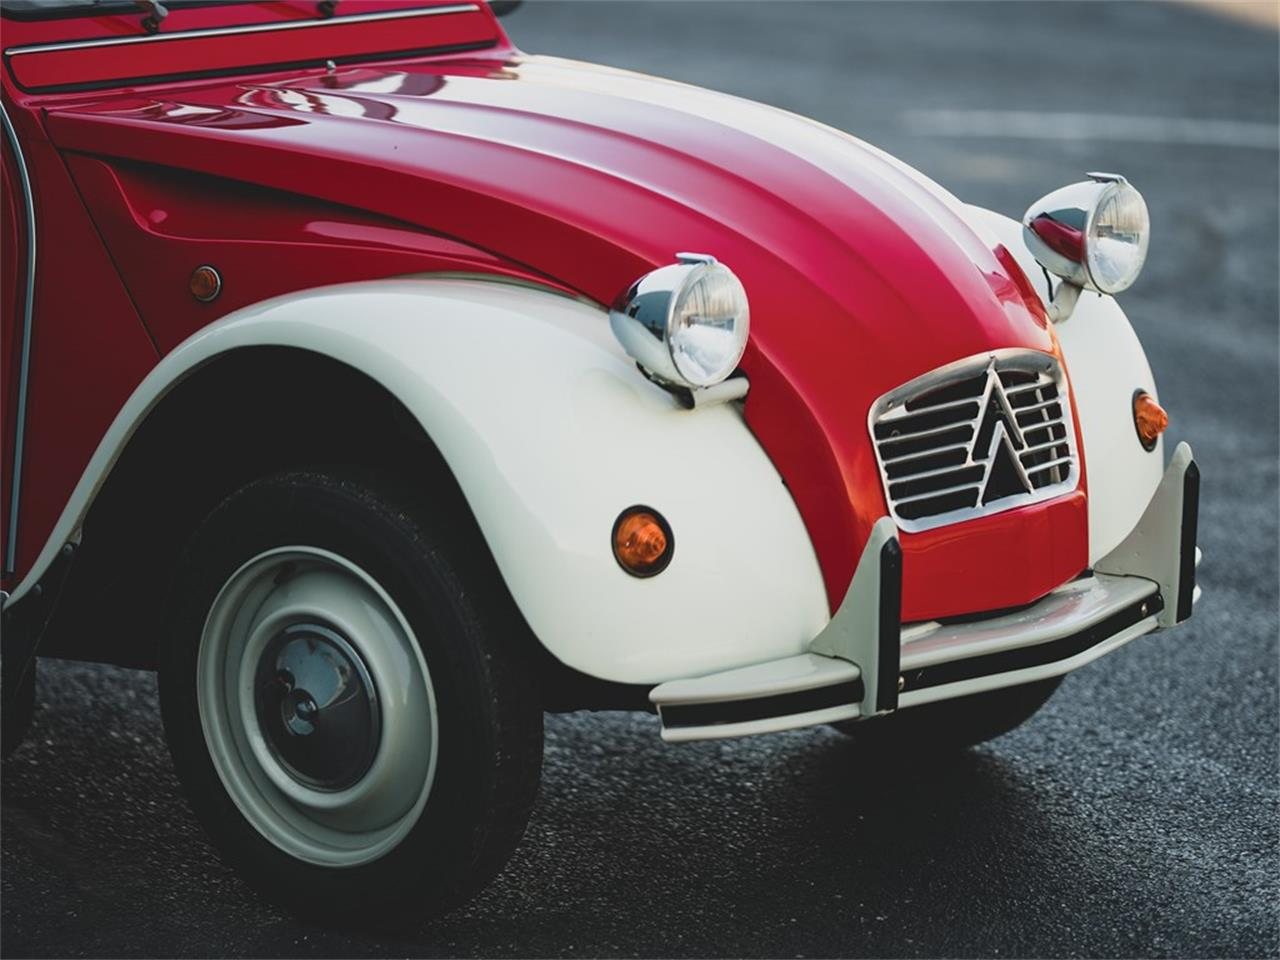 Large Picture of '75 Citroen 2CV Auction Vehicle Offered by RM Sotheby's - PXG9